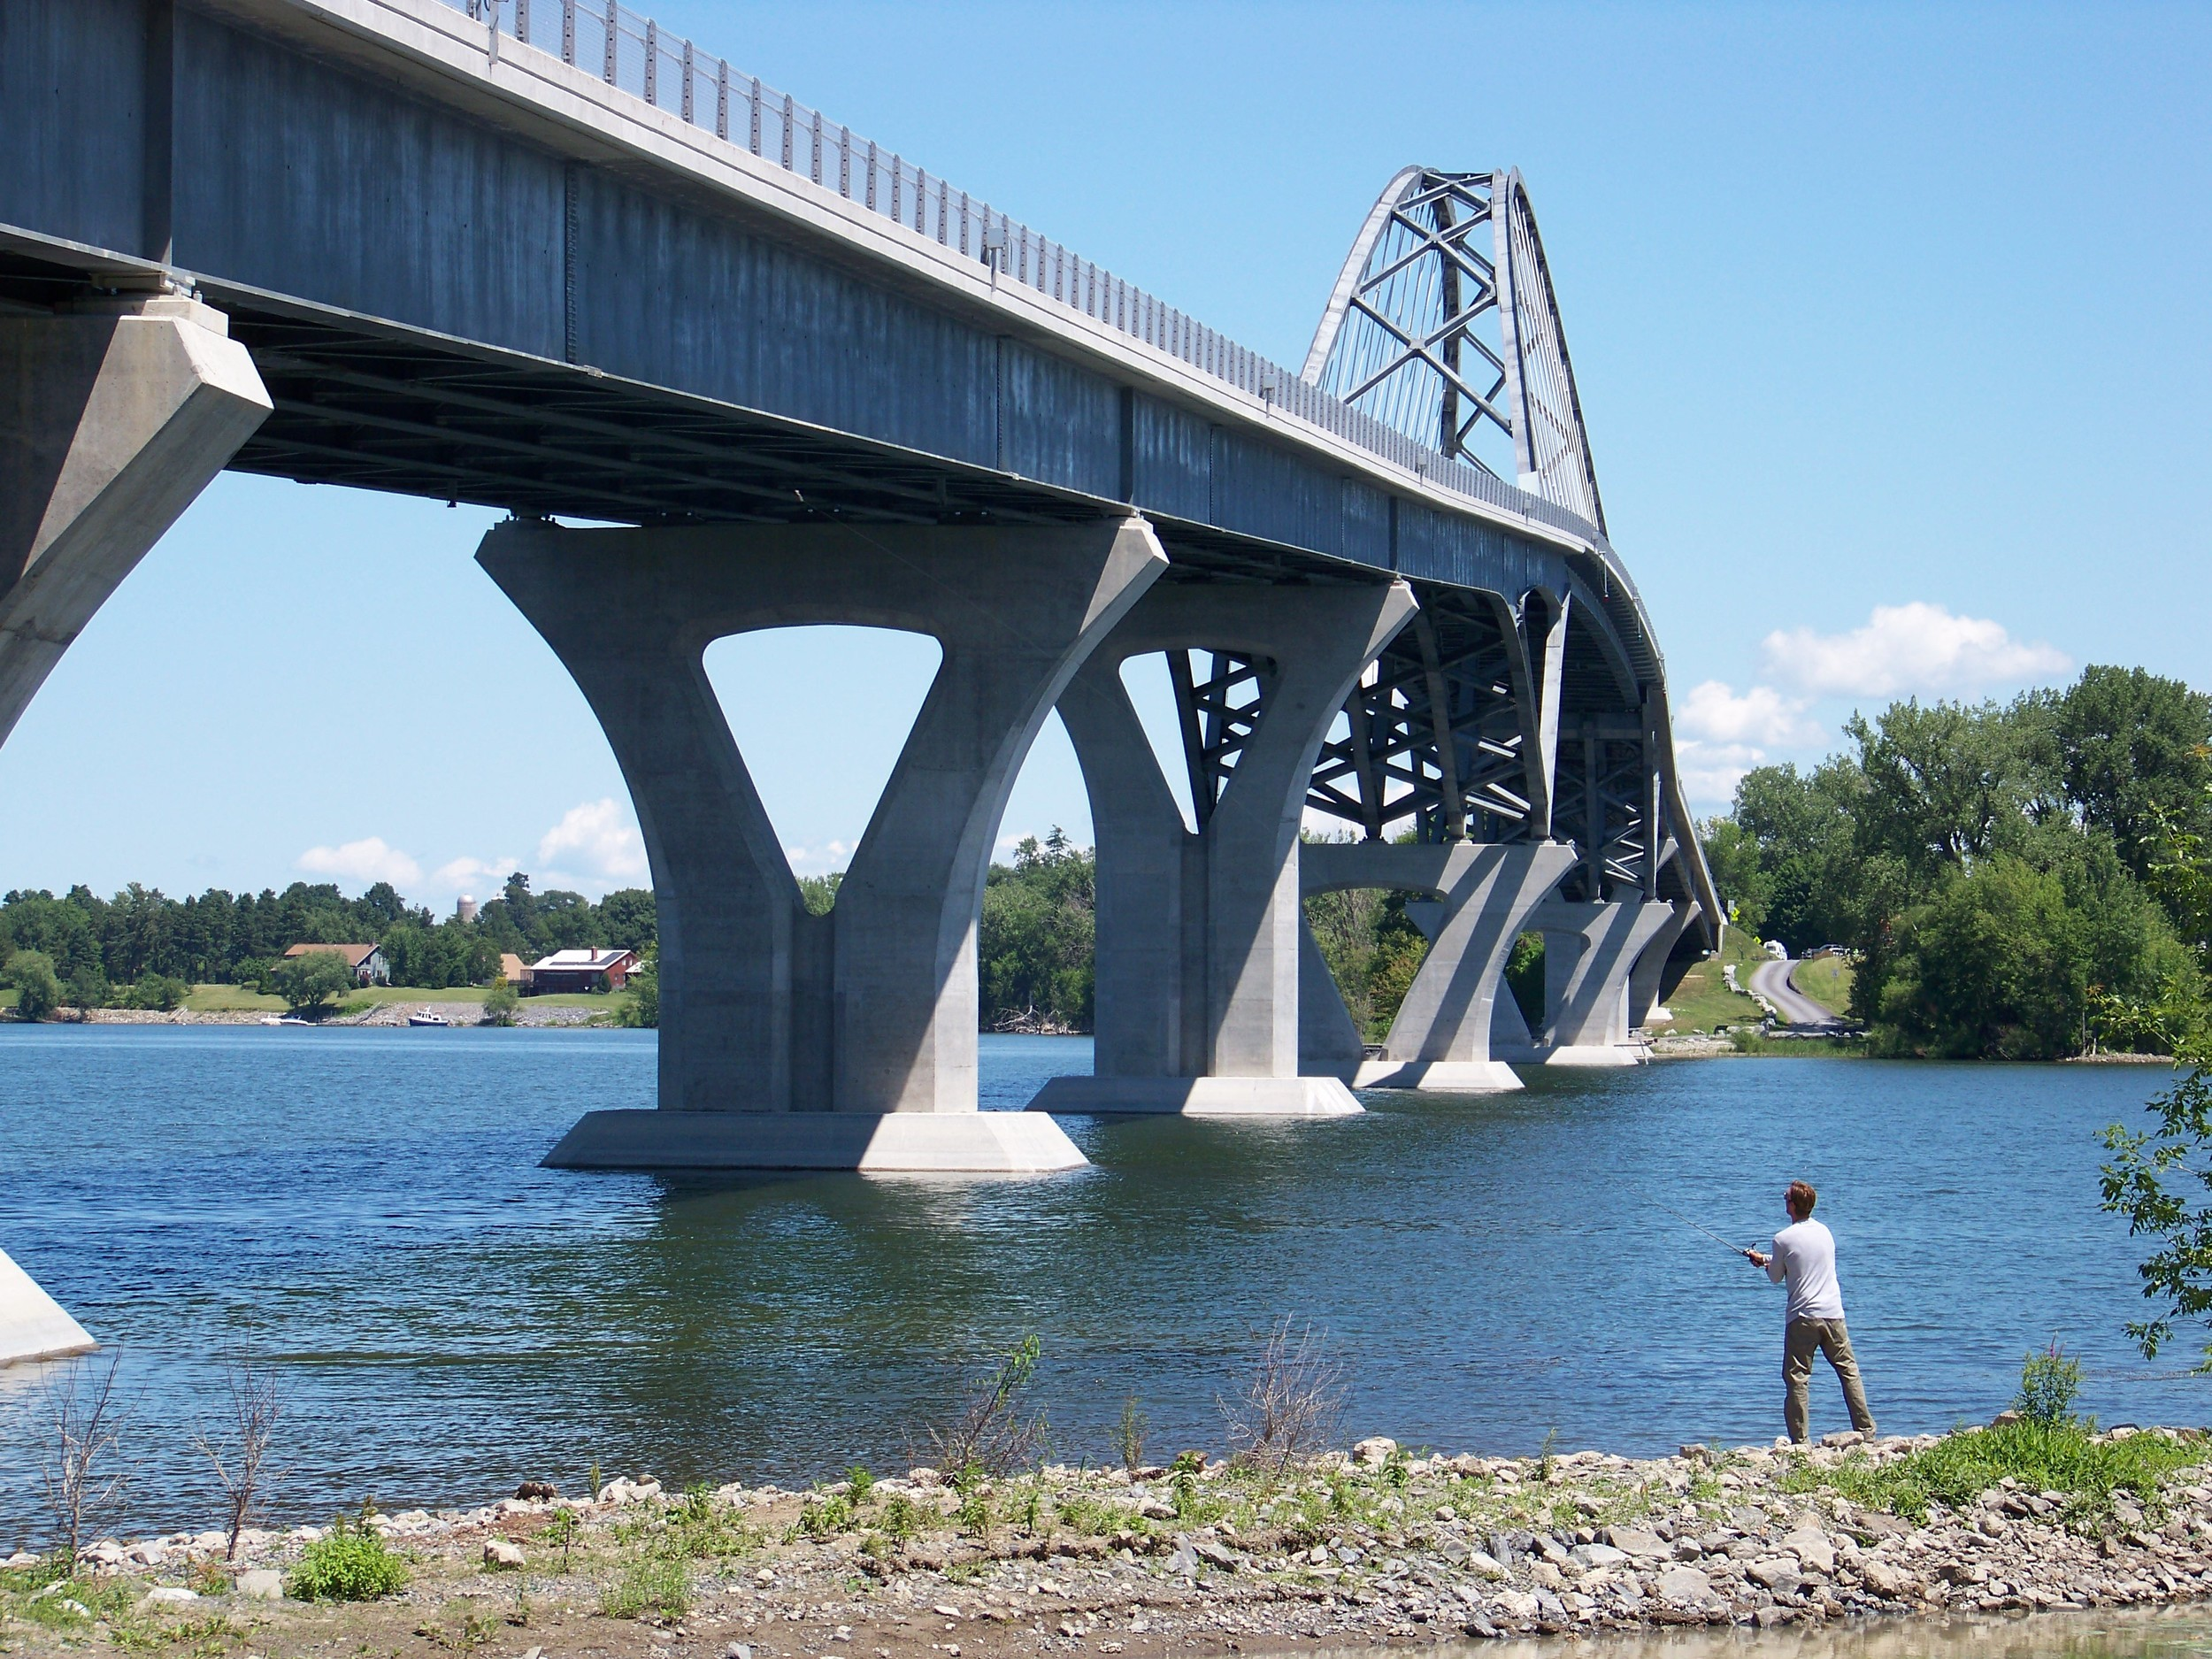 The Lake Champlain Bridge at the southern portion of the lake spanning from New York to Vermont. Troy is shore fishing in New York; the opposite shore is Vermont.